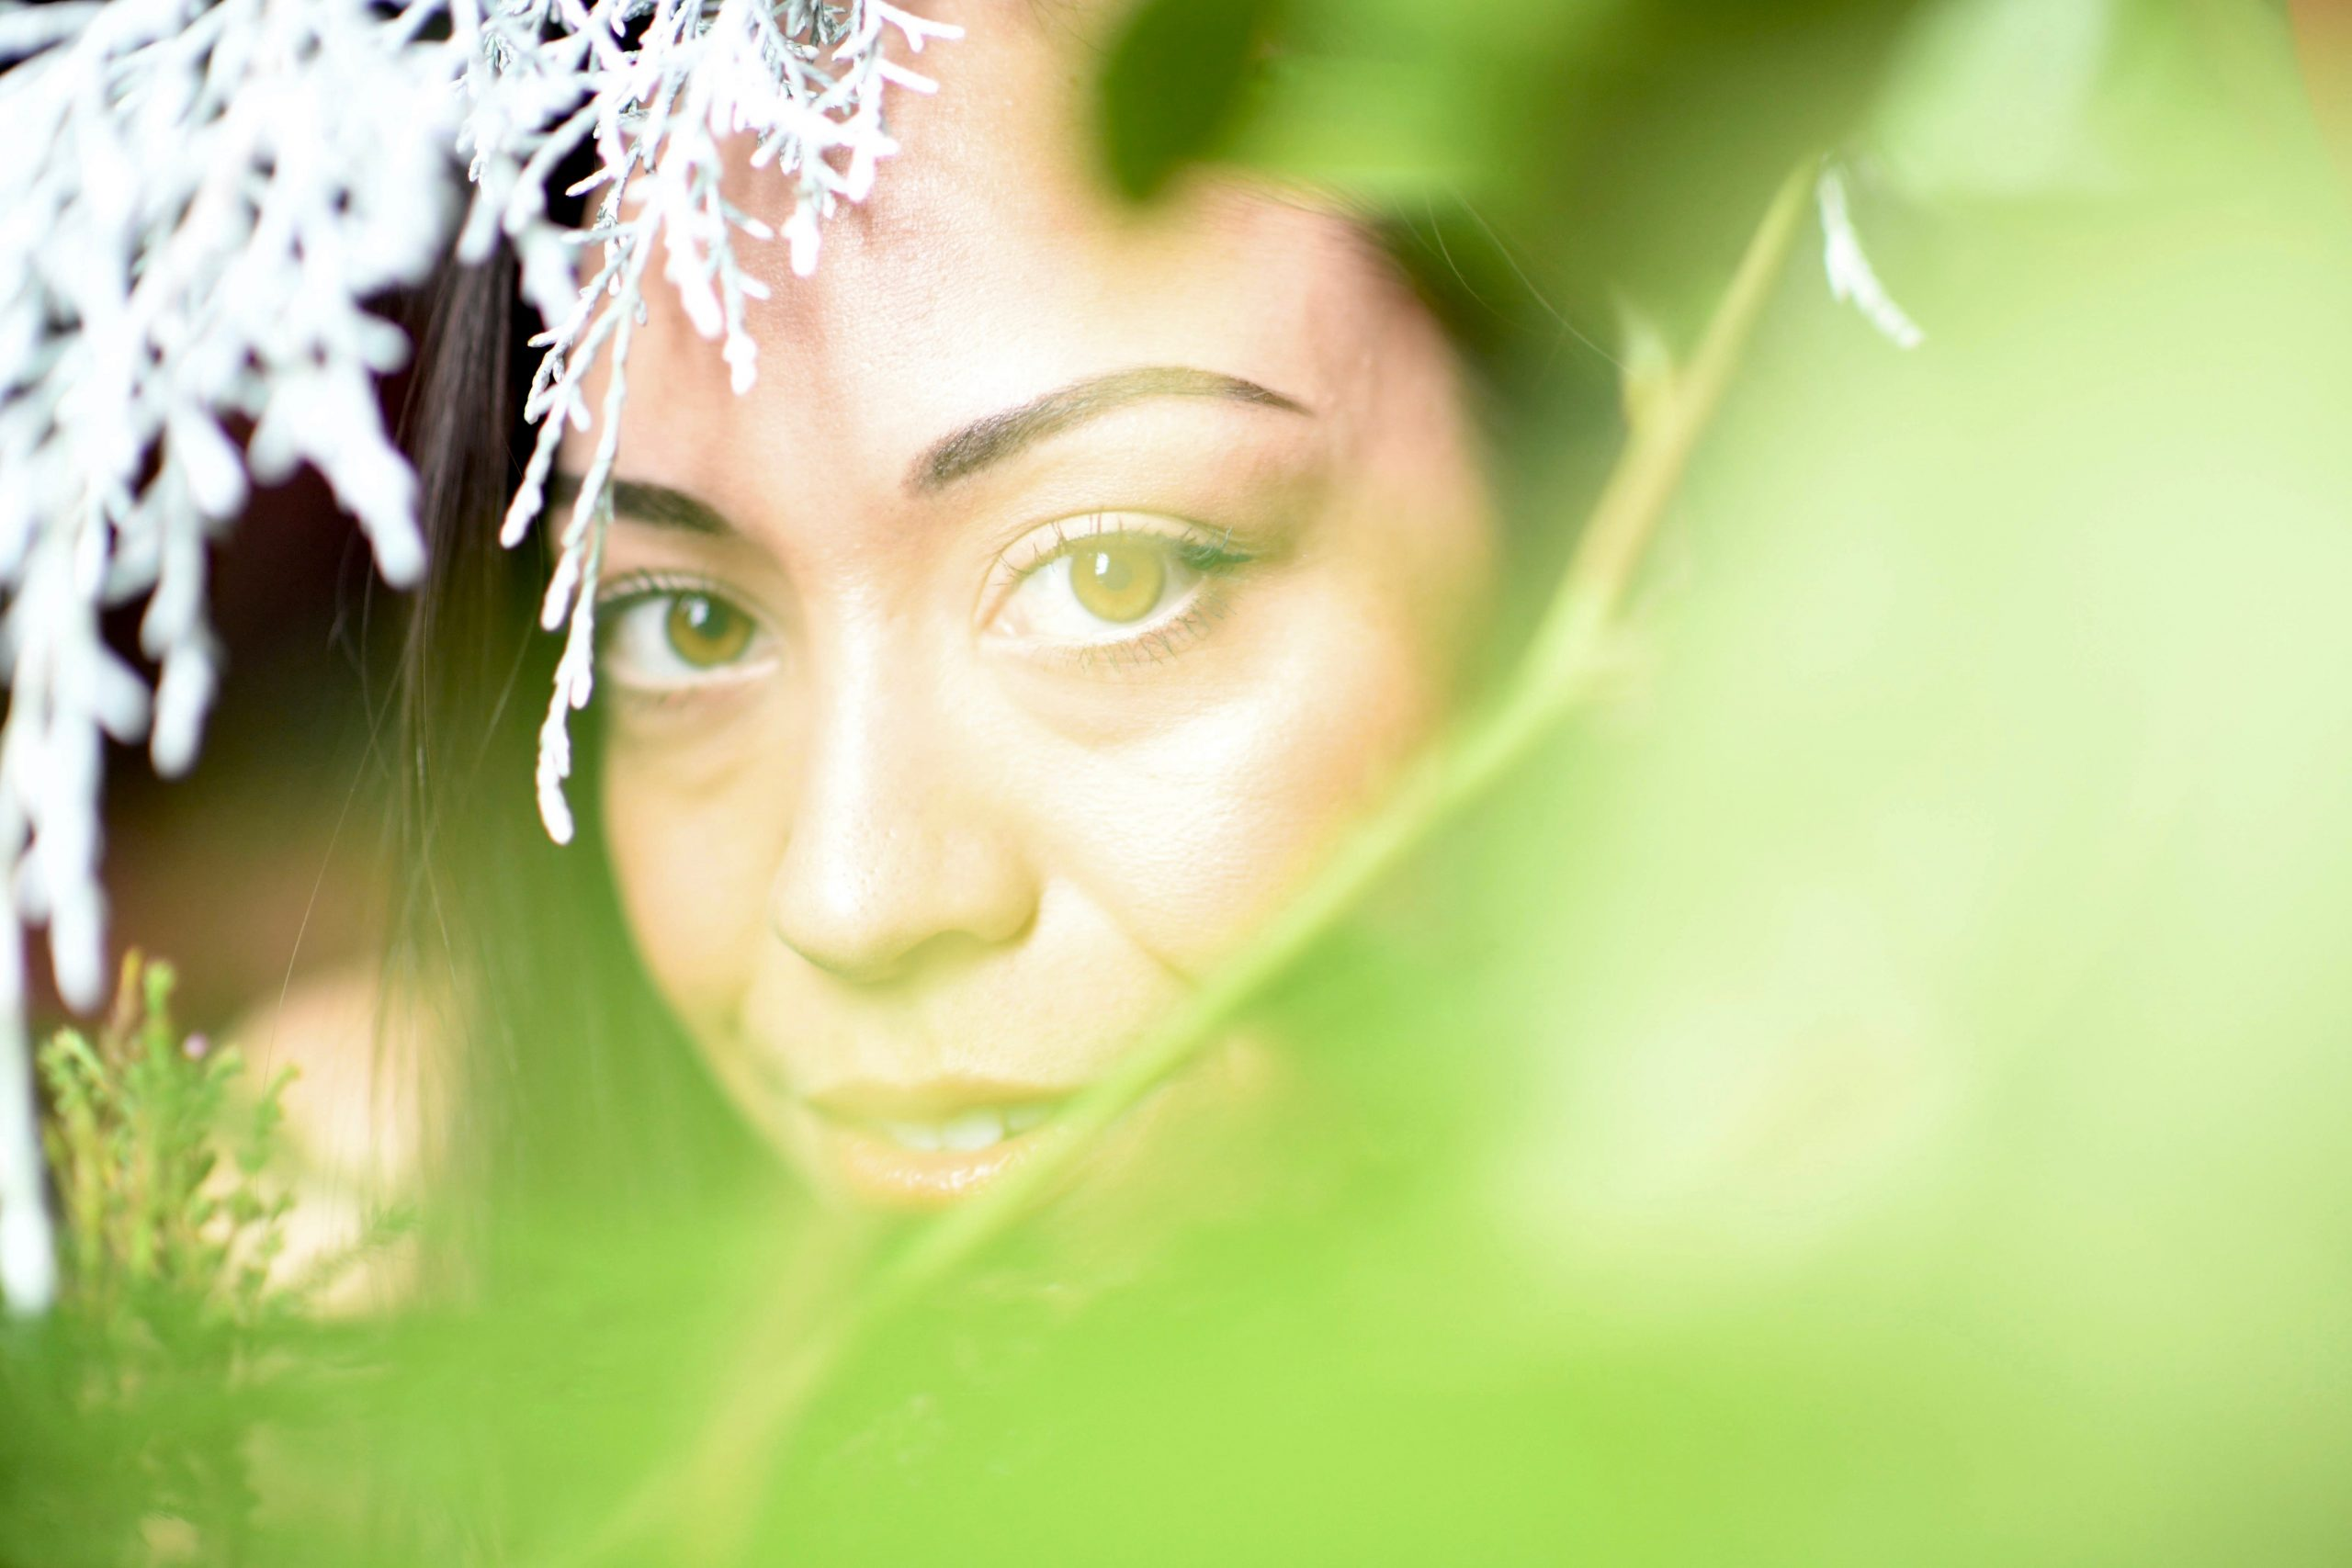 Looking elusive but proving steadfast, Helena is a key character amid the hijinks in 'A Midsummer Night's Dream.' Zoe Abuyuan plays the role for PICT. (photo: Maria Palermo)